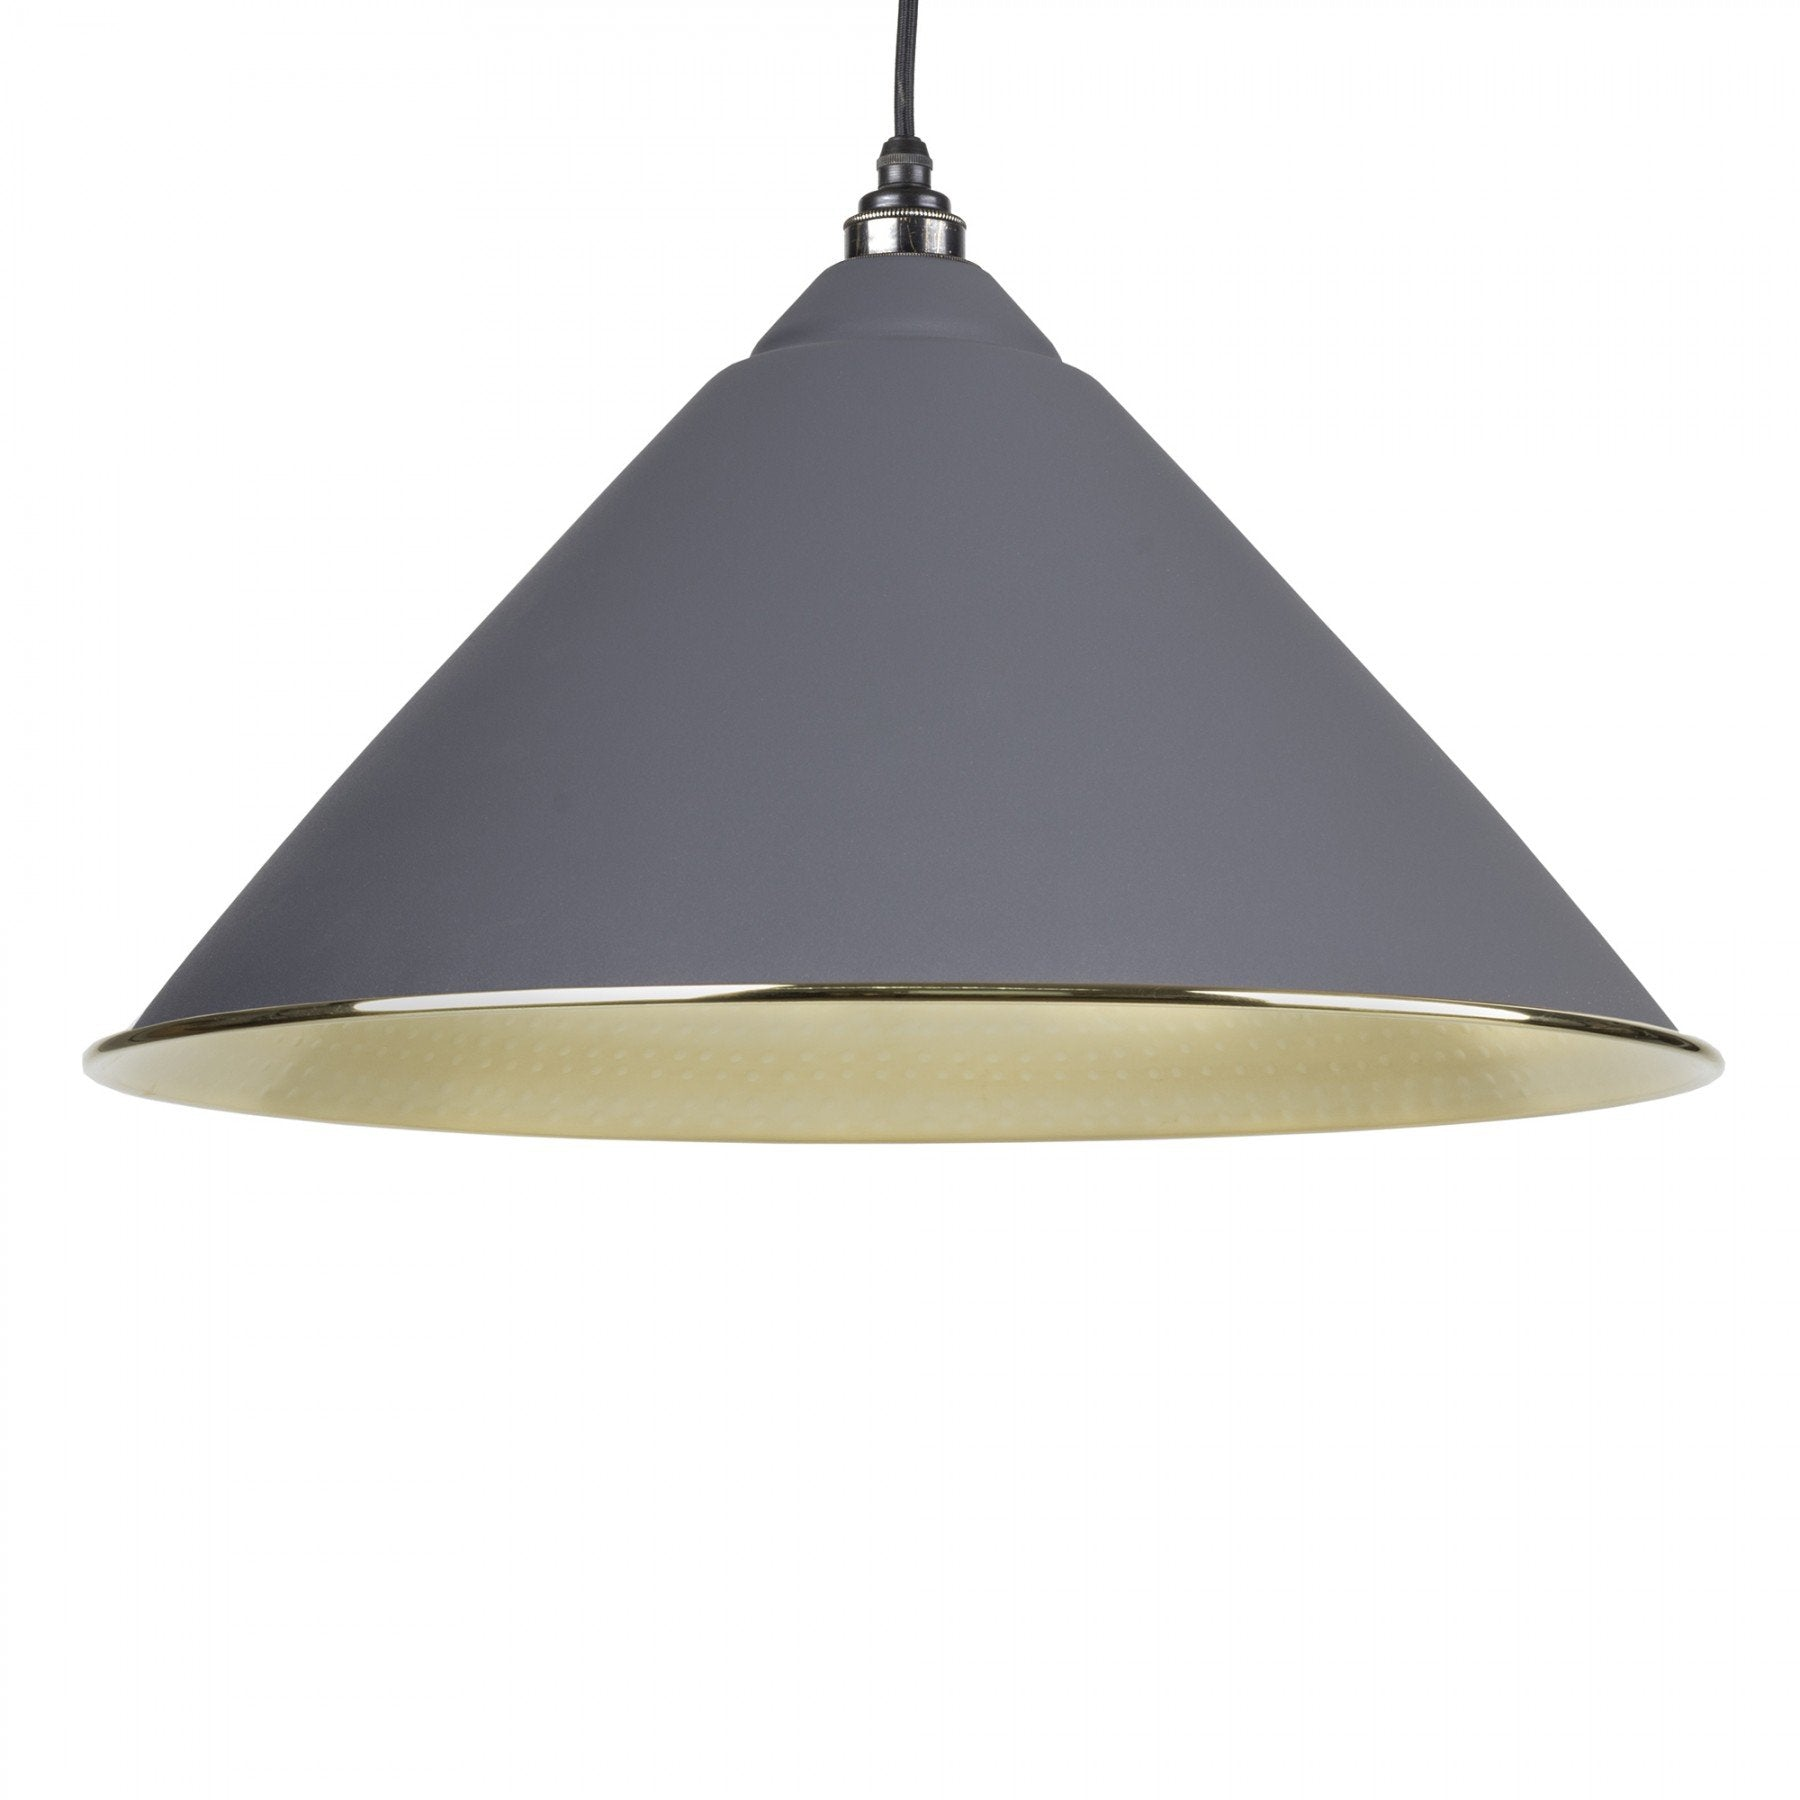 From The Anvil Dark Grey & Hammered Brass Interior Hockley Pendant - No.42 Interiors